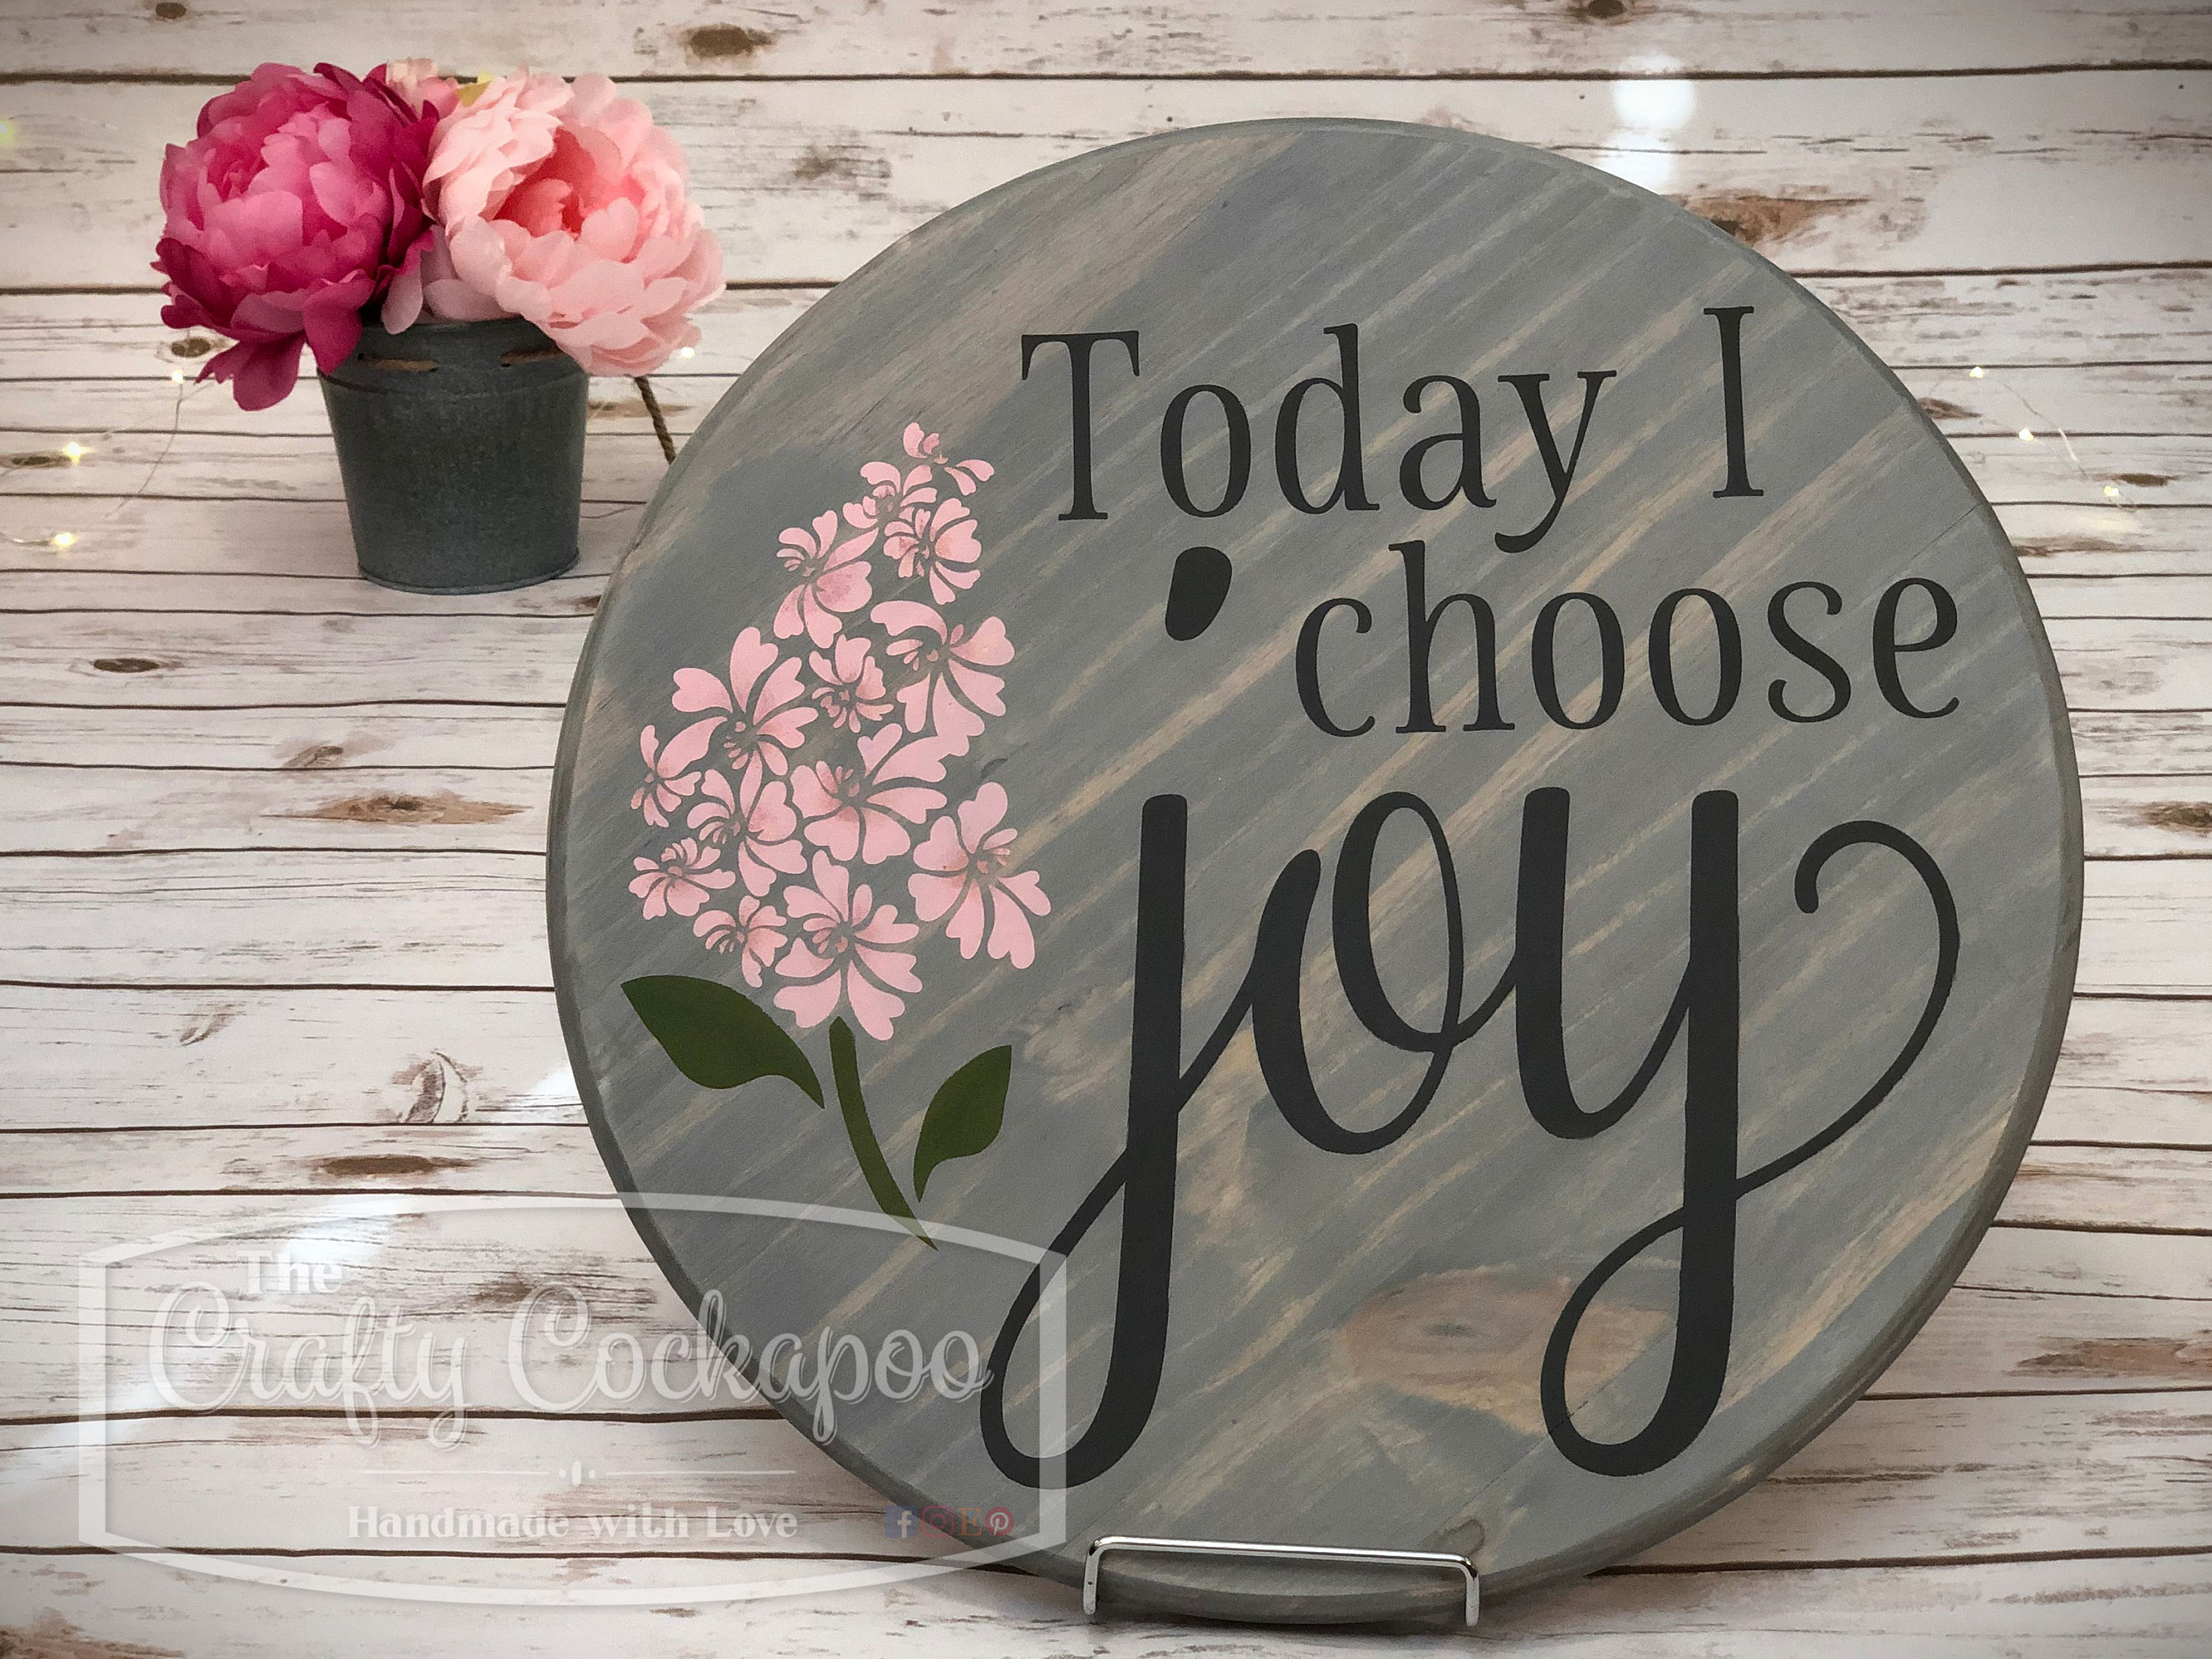 Today I Choose Joy Round Wood Sign, Inspirational Decor, Mother's Day Gift,  Joy Wall Art, Spring Decor in Let Whatever You Do Today Be Enough Wood Wall Decor (Image 22 of 30)